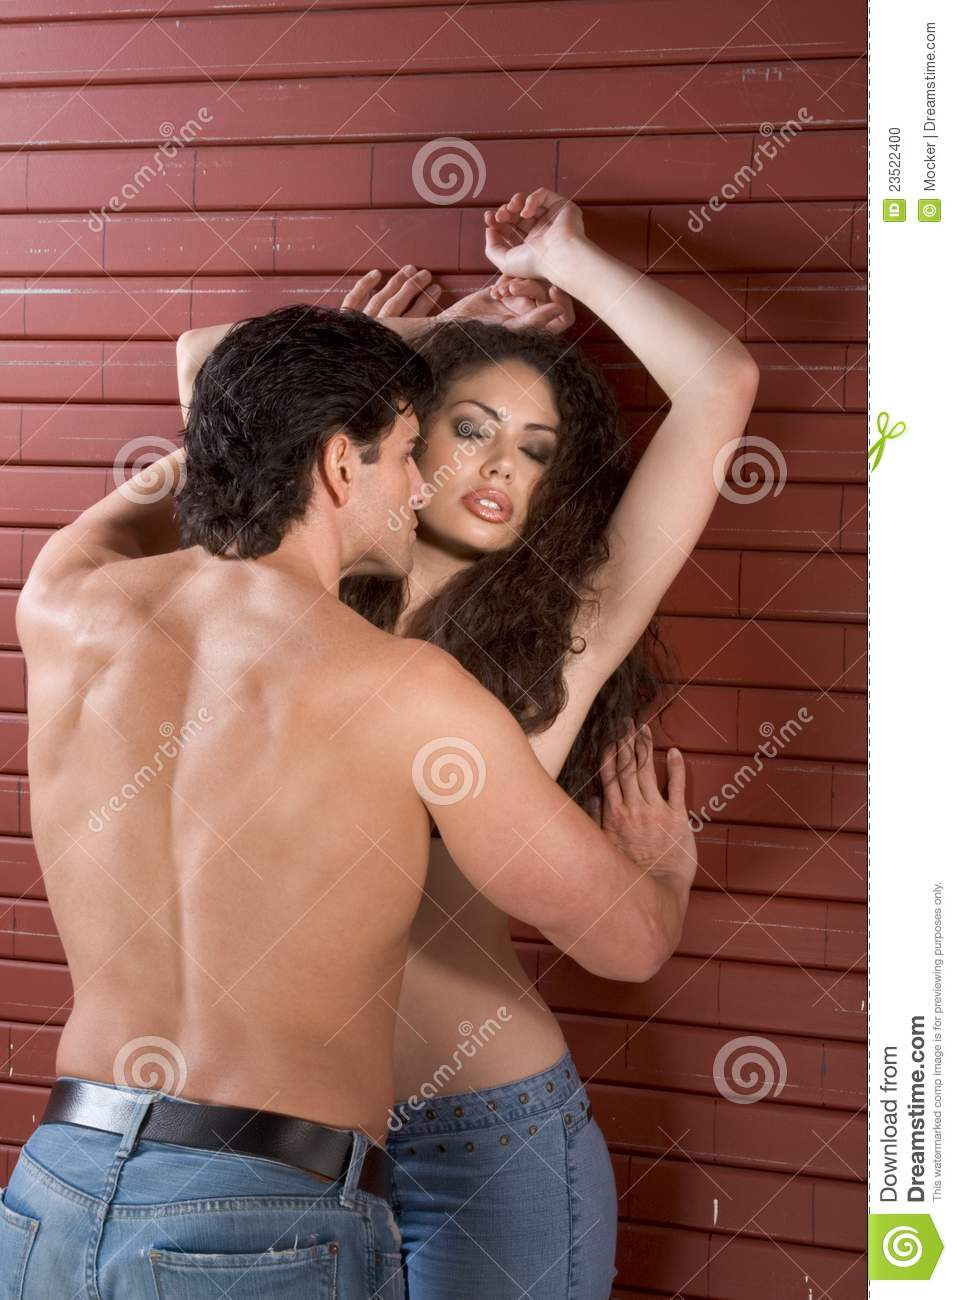 man and woman sex nude